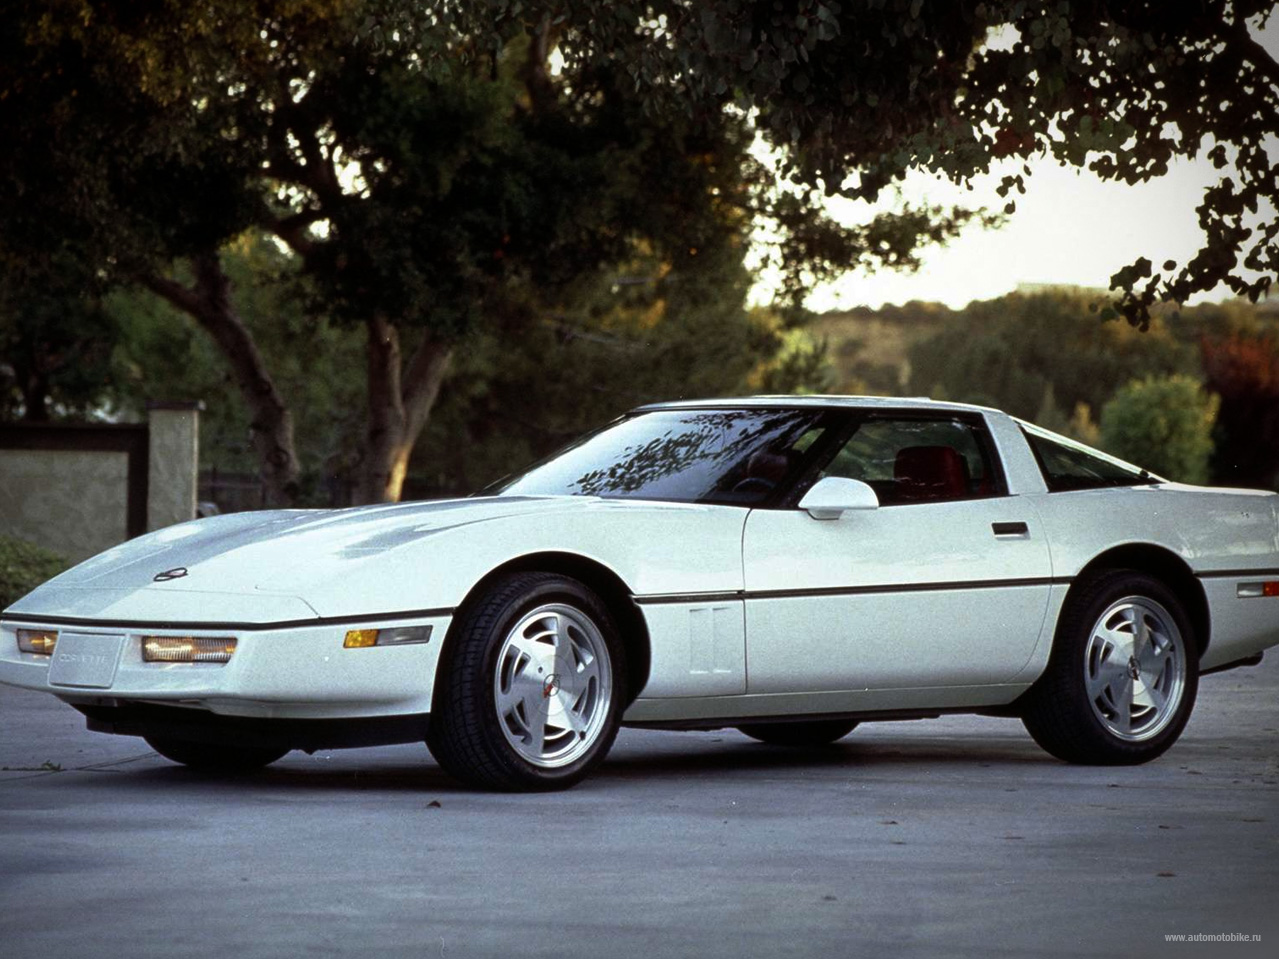 Chevrolet corvette 1983 photo - 6